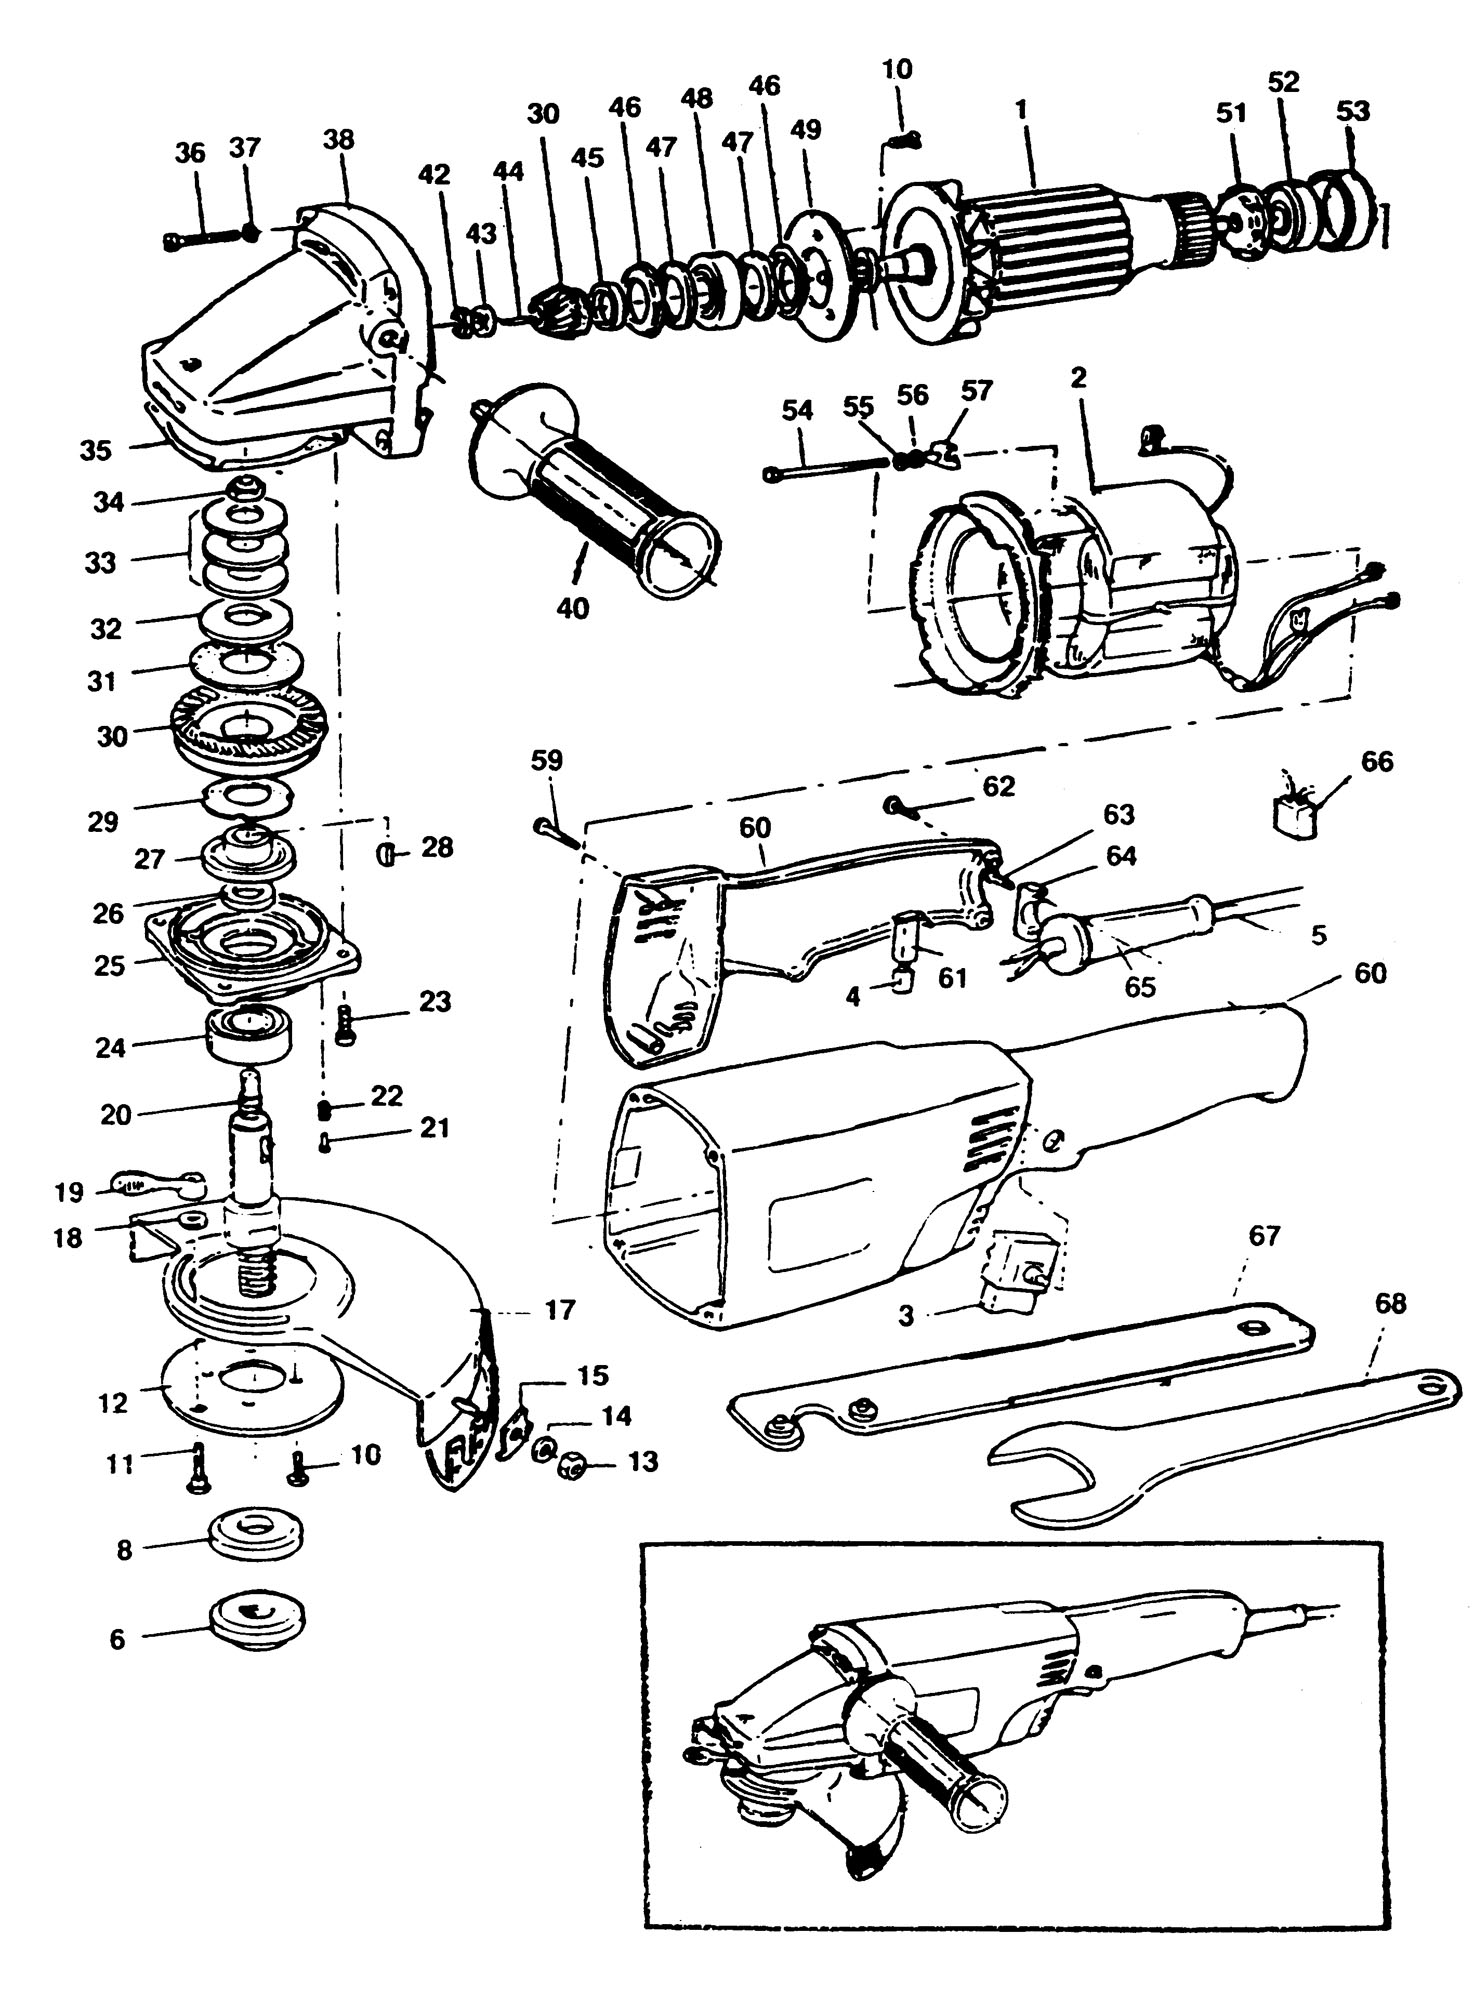 Black And Decker Angle Grinder Manual